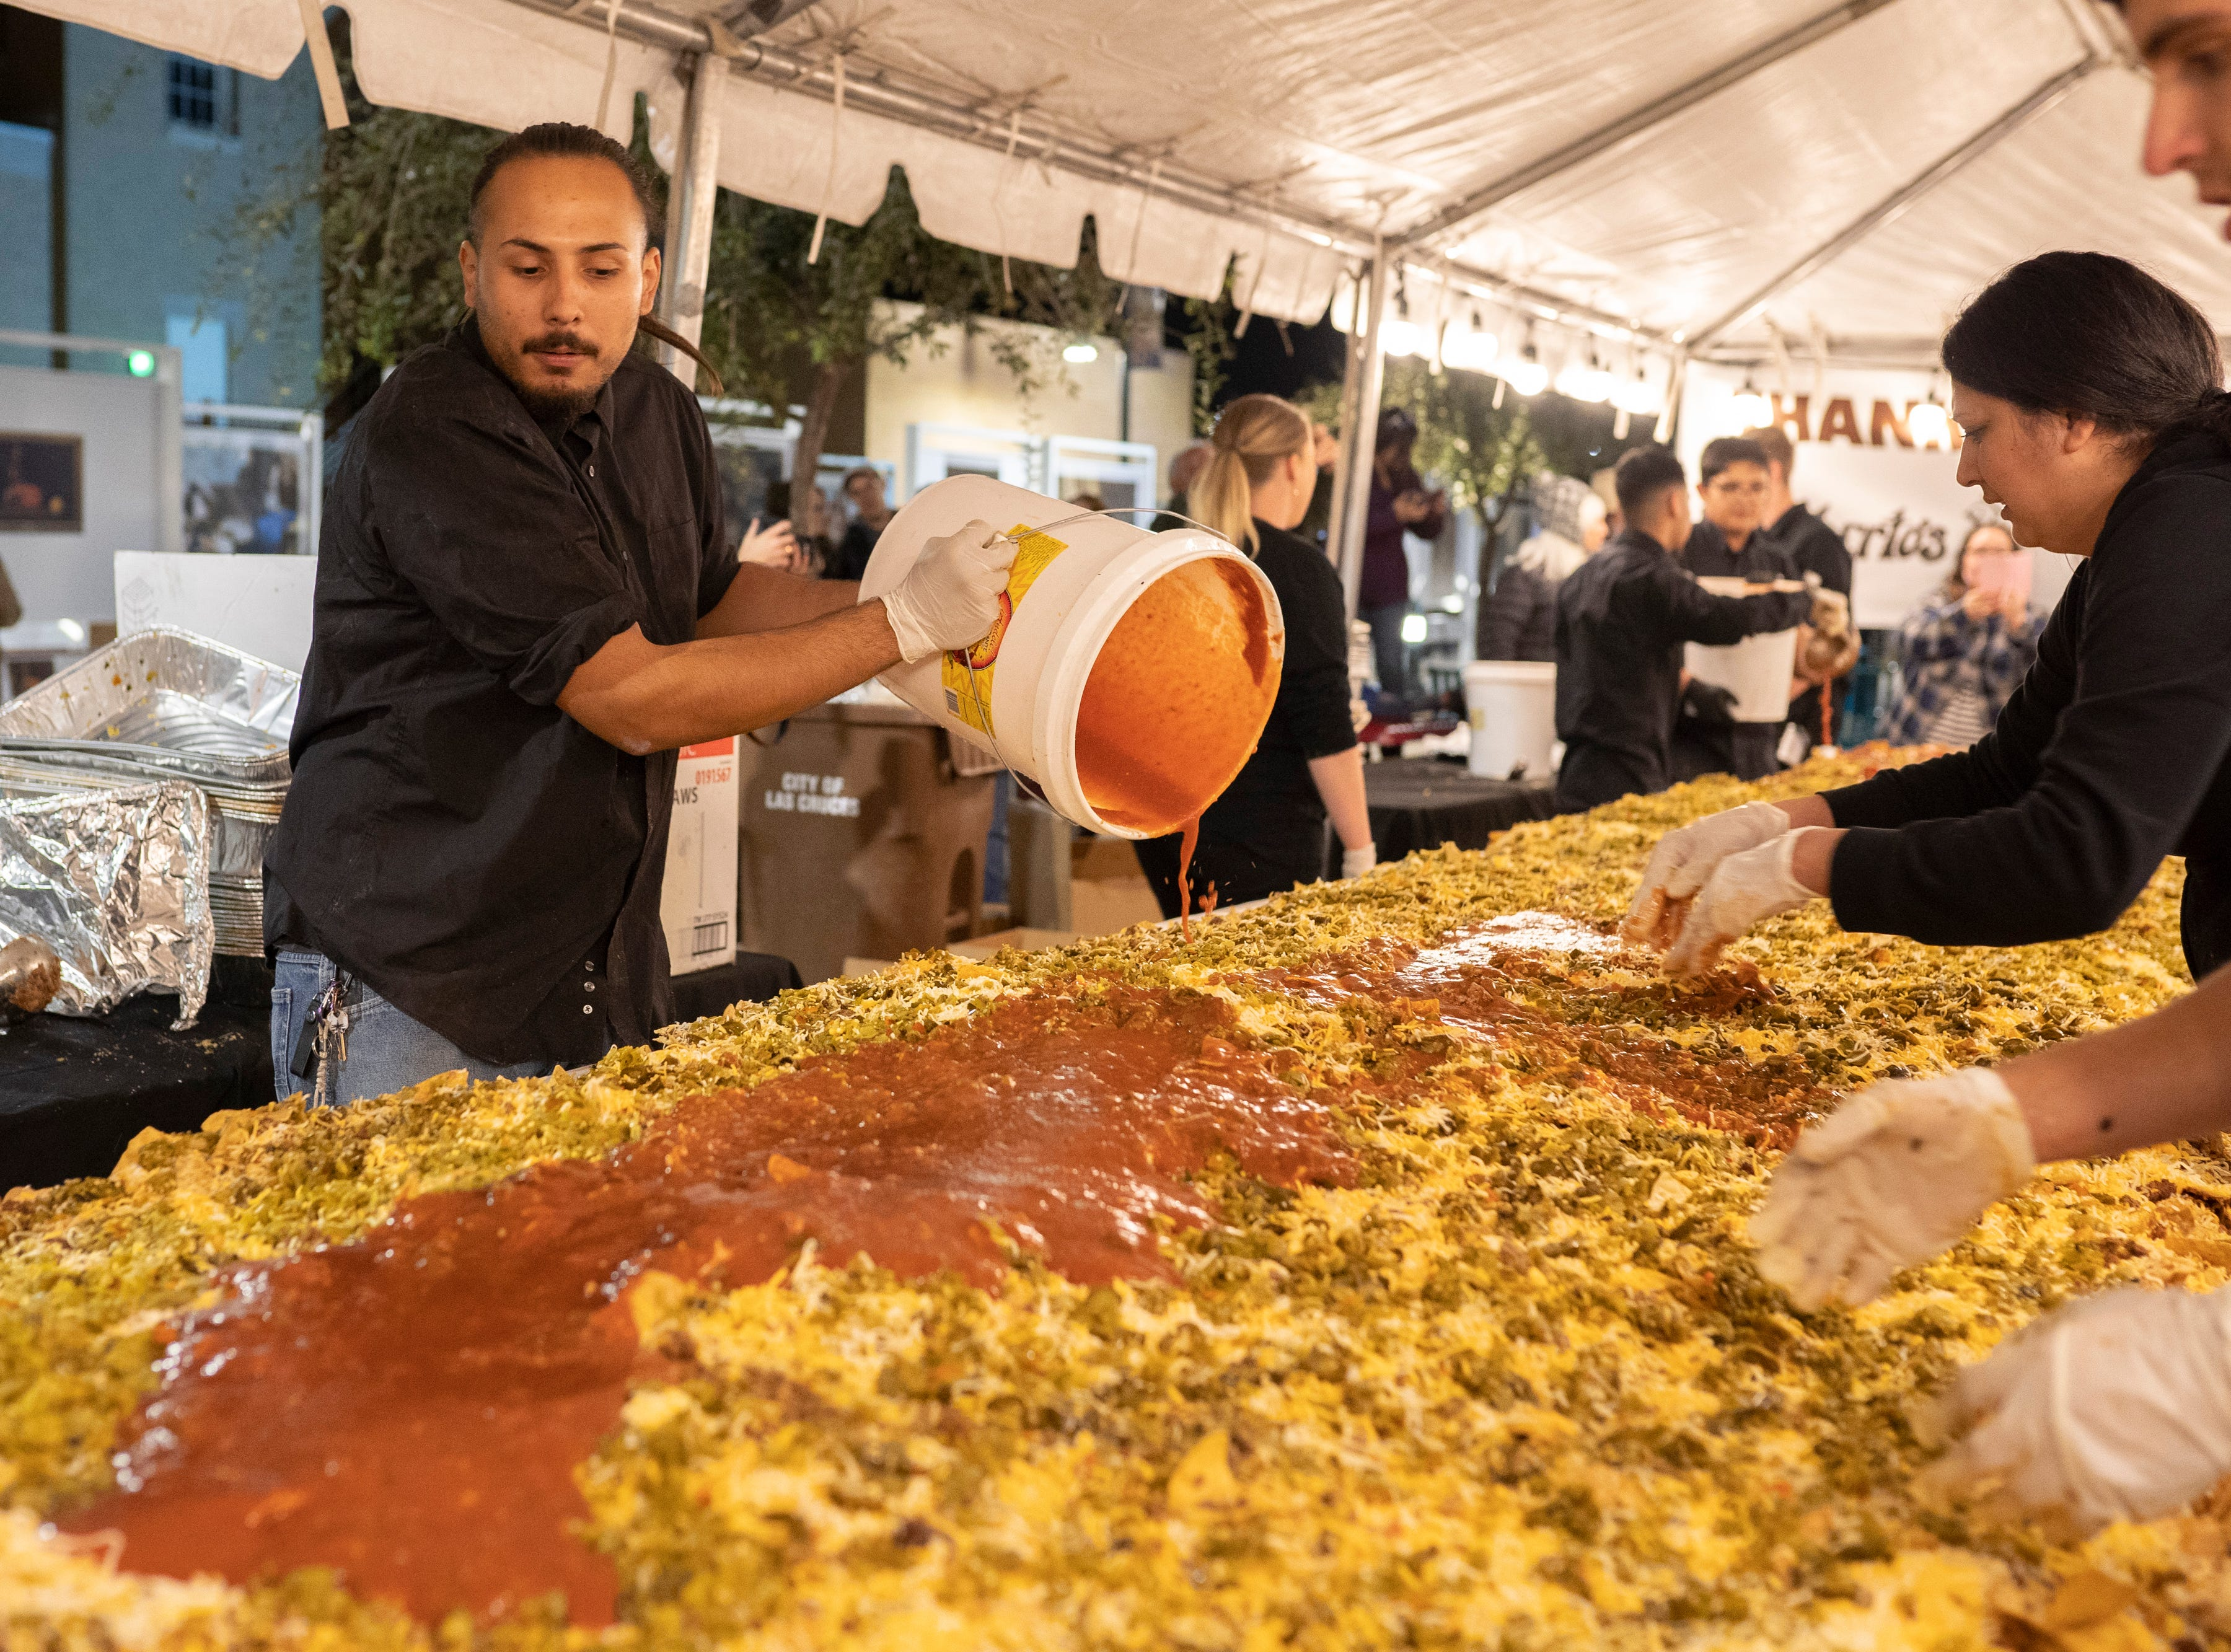 Dickerson's Catering employees mix nacho ingredients together at Noche de Nachos. Las Cruces unofficially set the record for world's largest serving of nachos Saturday, Nov. 10, 2018, in downtown Las Cruces.